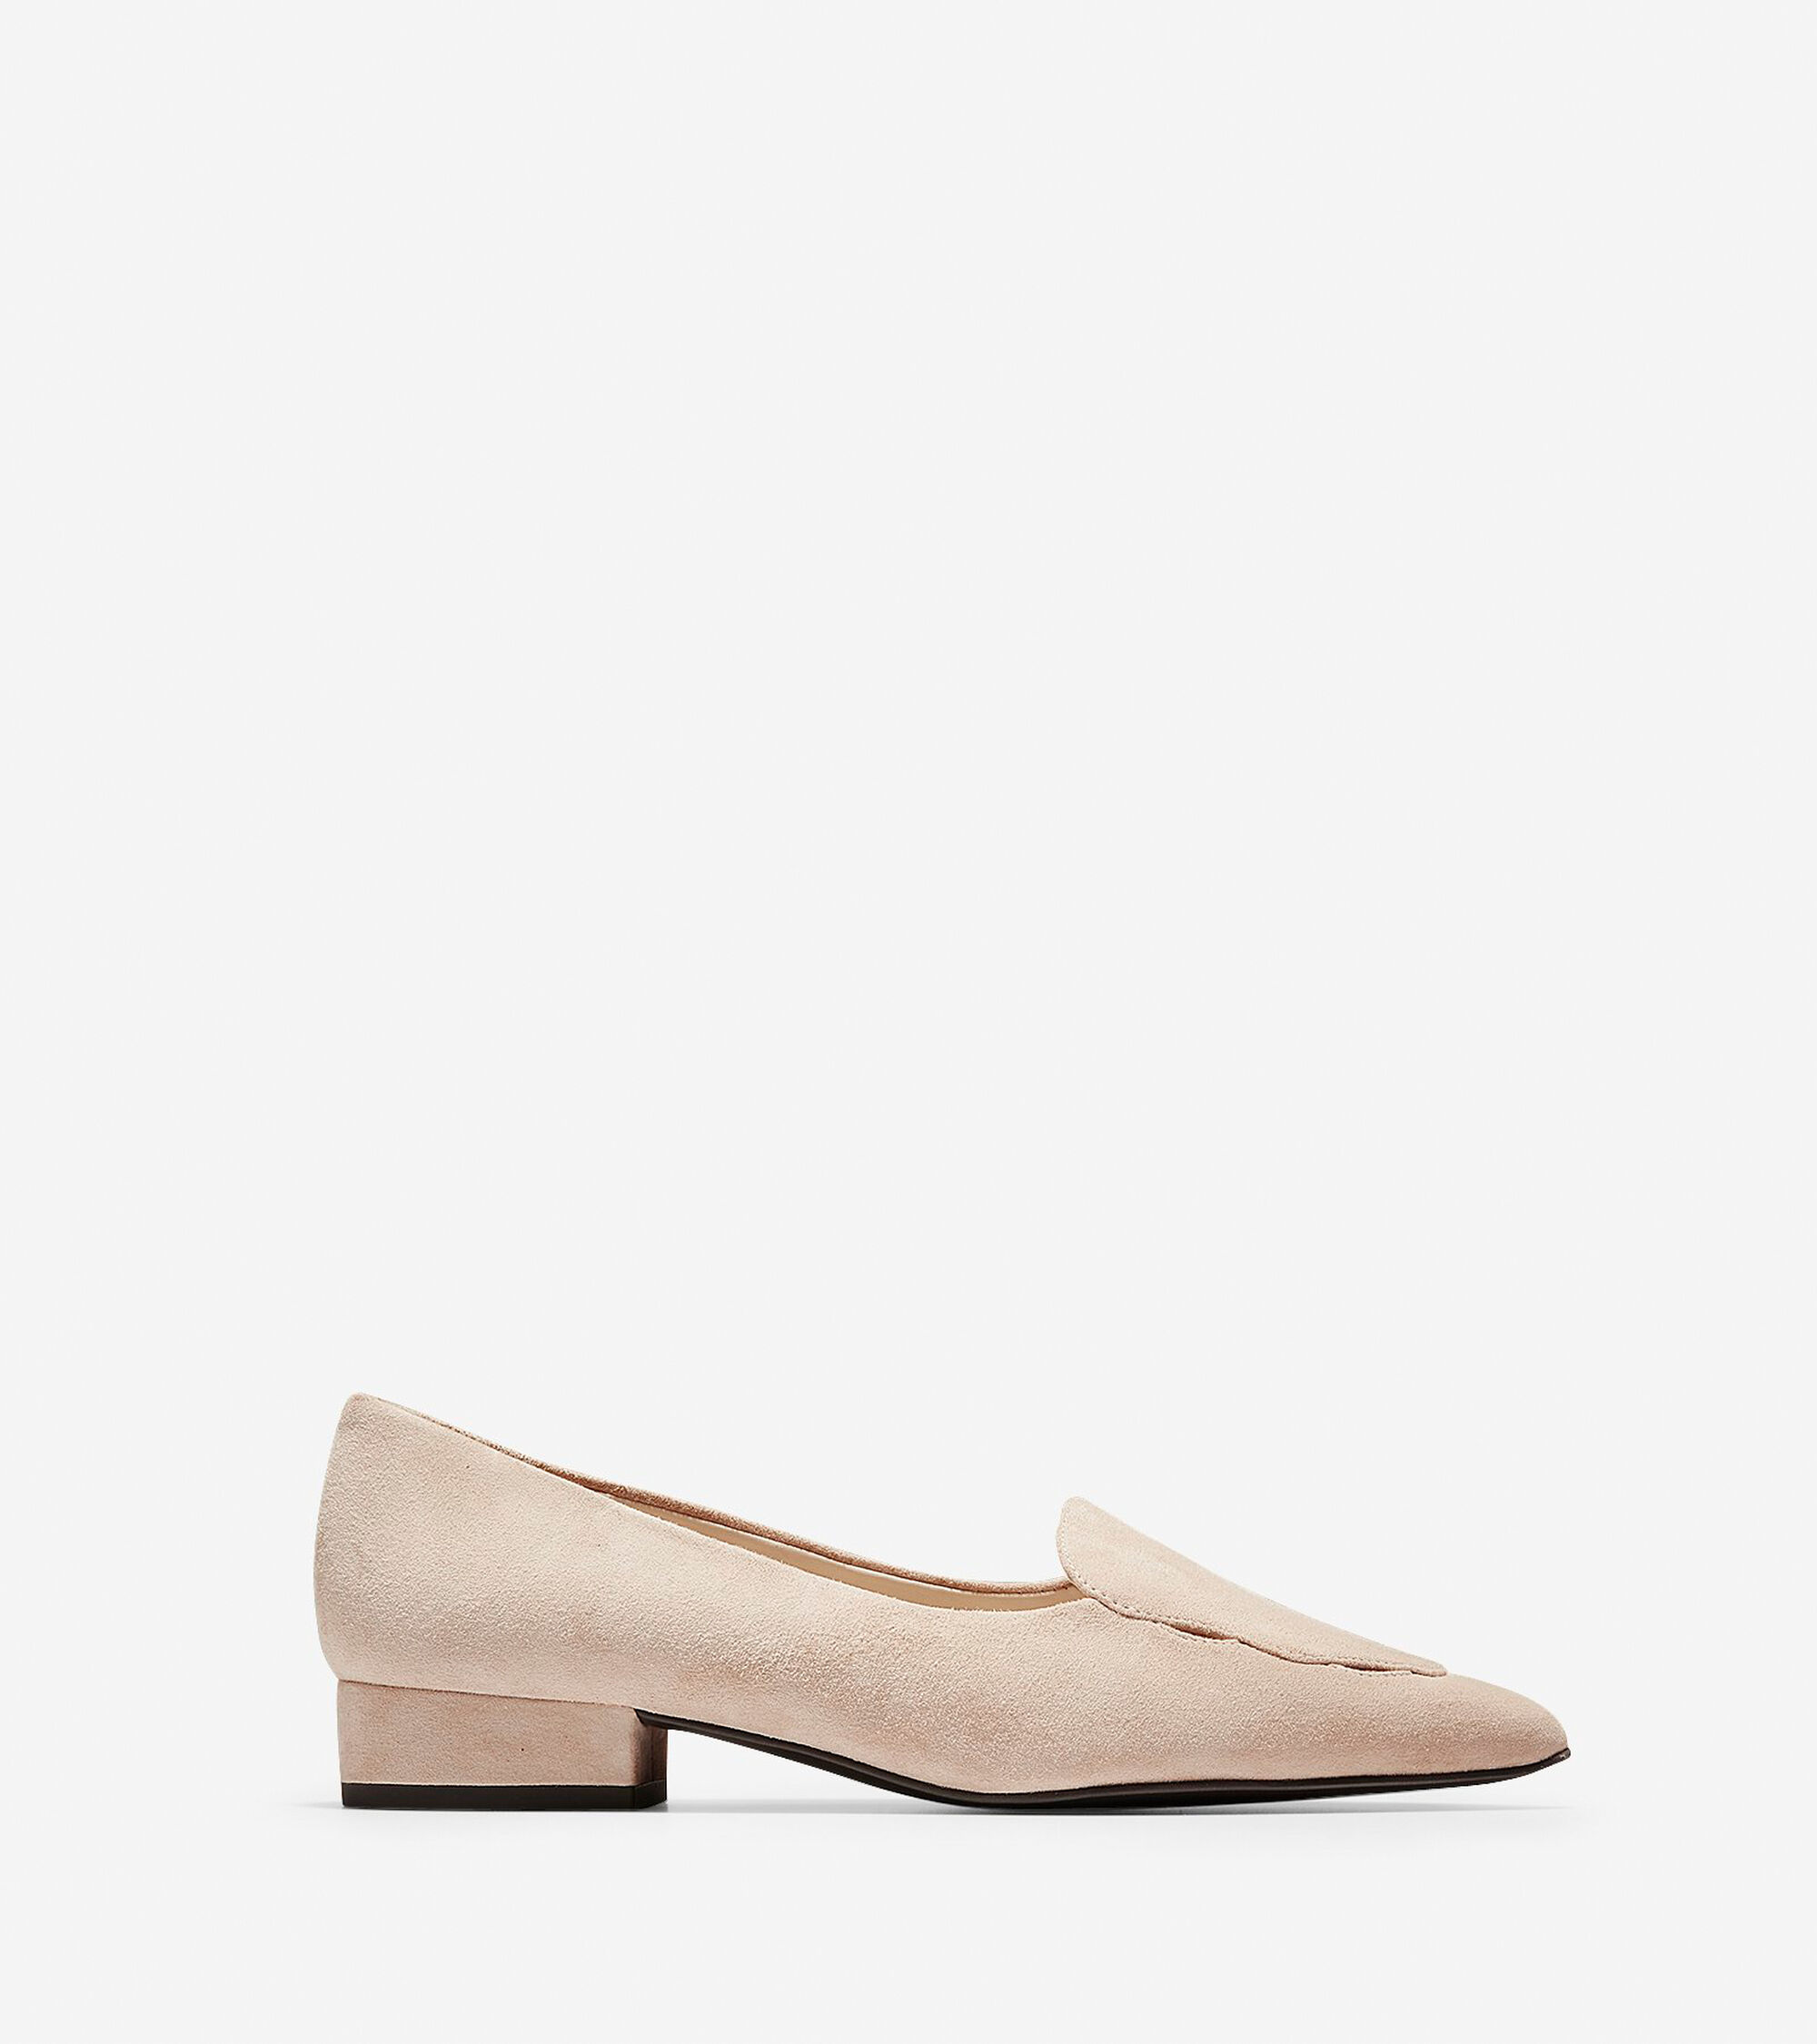 d722cfd7c92 Women s Leah Skimmer Flats in Nude Suede